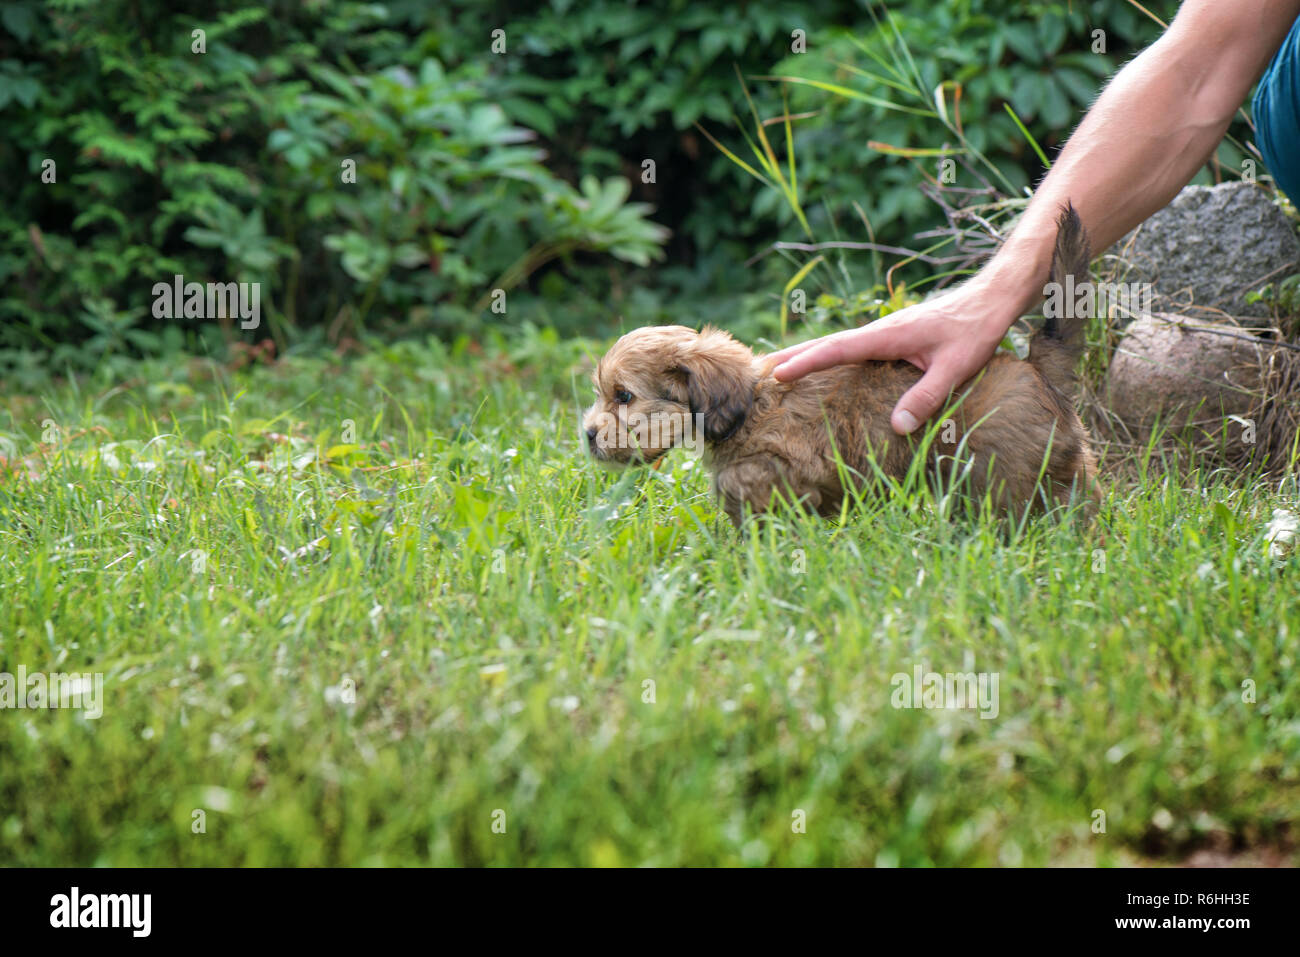 Little, lovely, fluffy, cute brown puppy playing outdoors with owner, obediently walking the first steps. Happy dog in the park or garden. Concept of - Stock Image